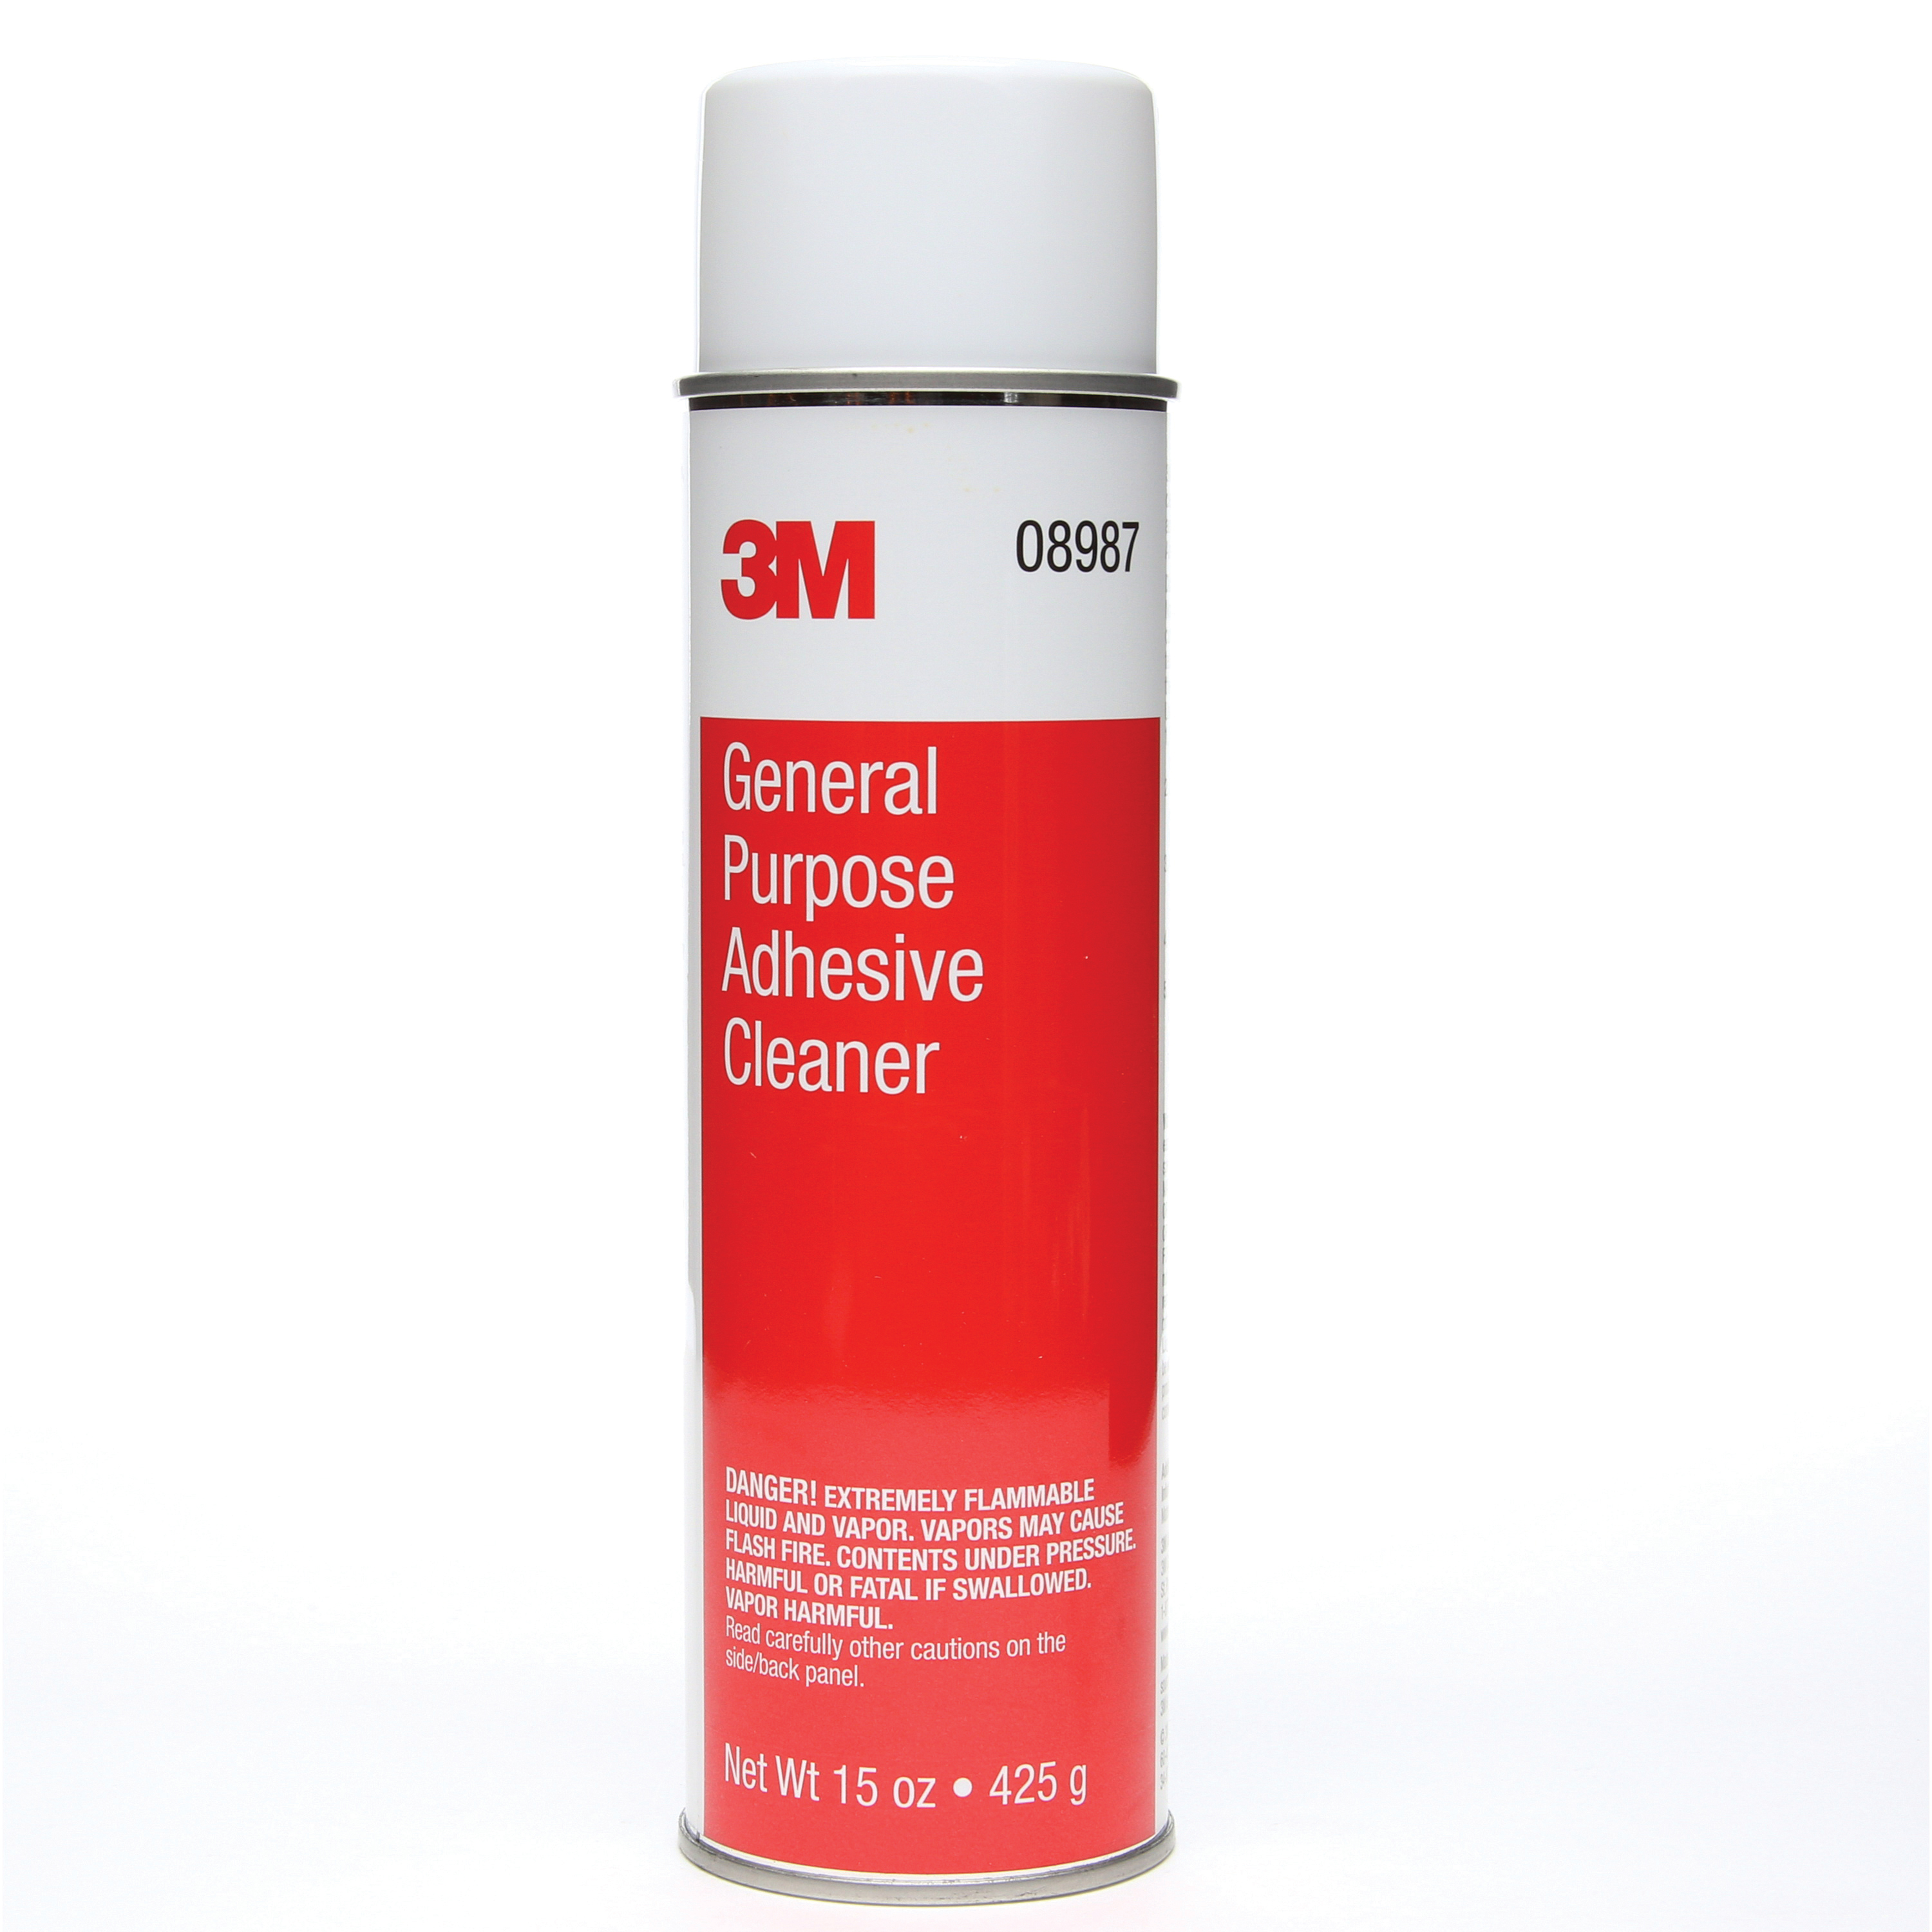 3M™ 051135-08987 General Purpose Adhesive Cleaner, 425 gm Aerosol Can, Liquid, Clear, Solvent